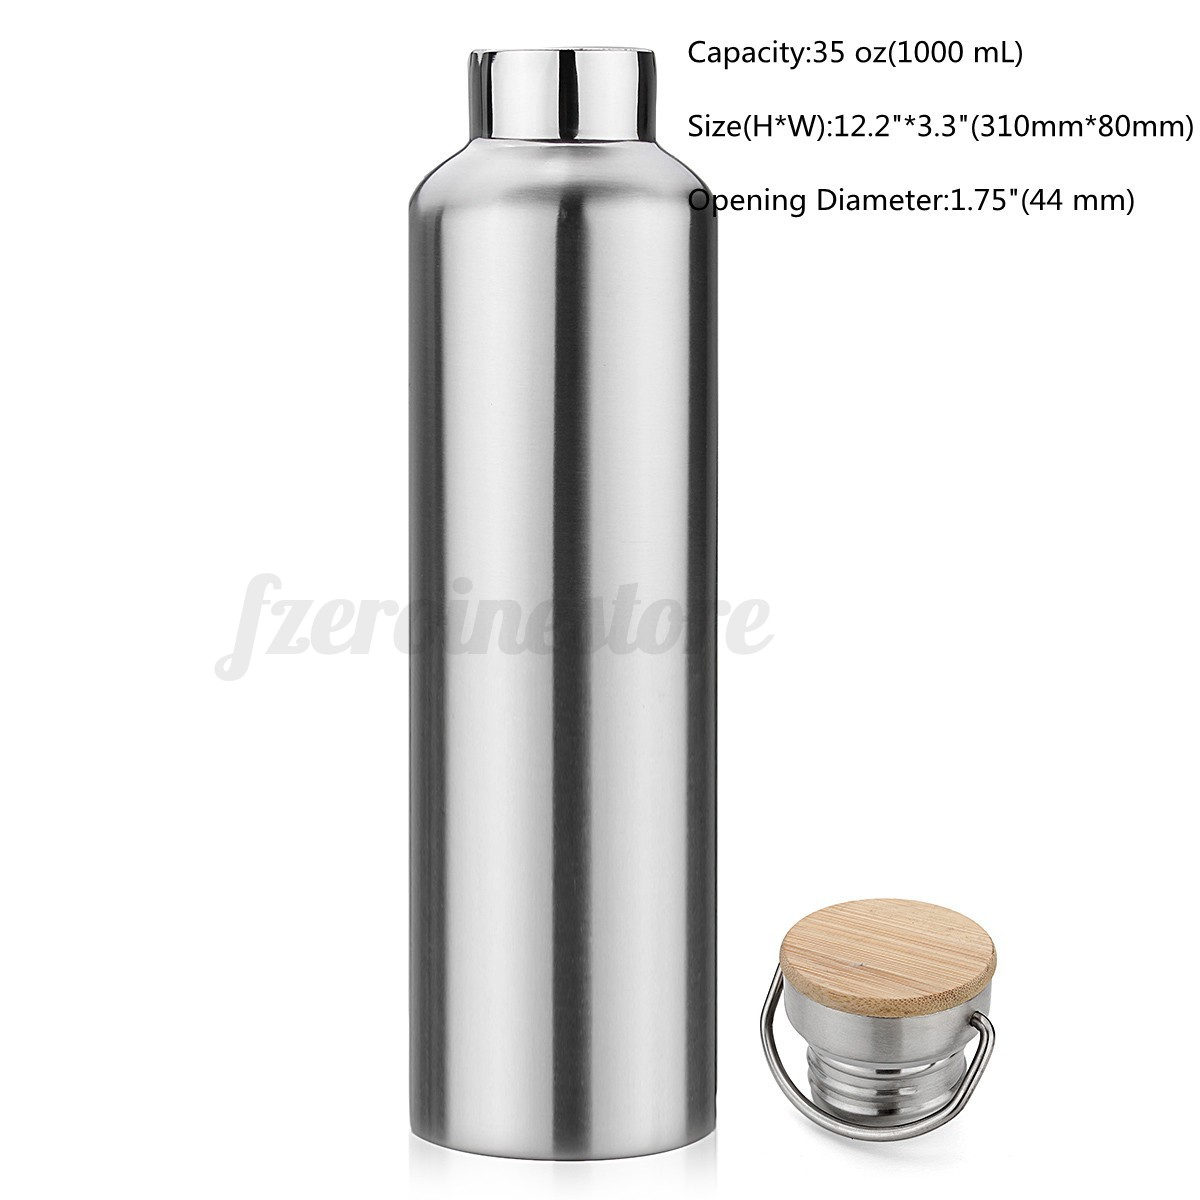 Stainless Steel Water Bottle for Travel Outdoor Yoga Camping Hiking Cycling